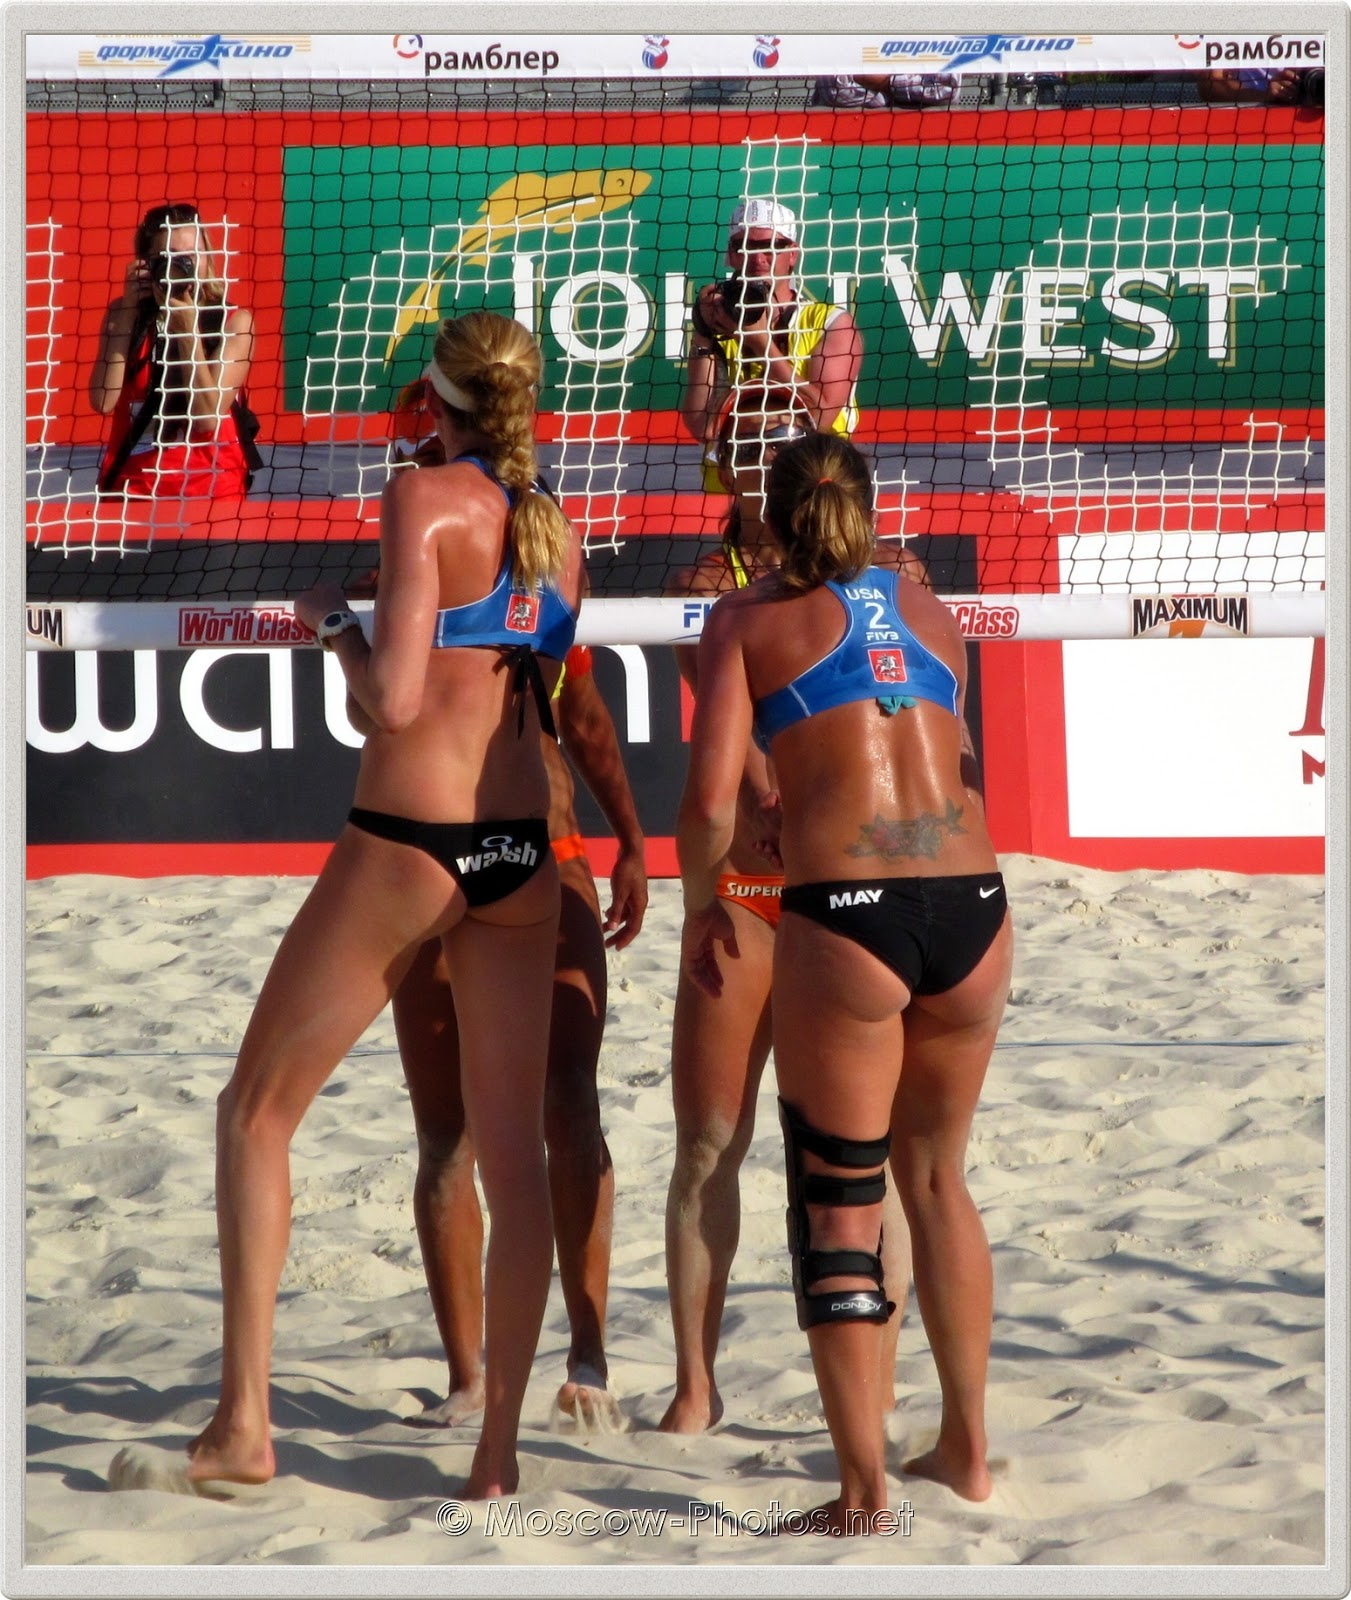 Kerri Walsh & Misty May-Treanor after the match